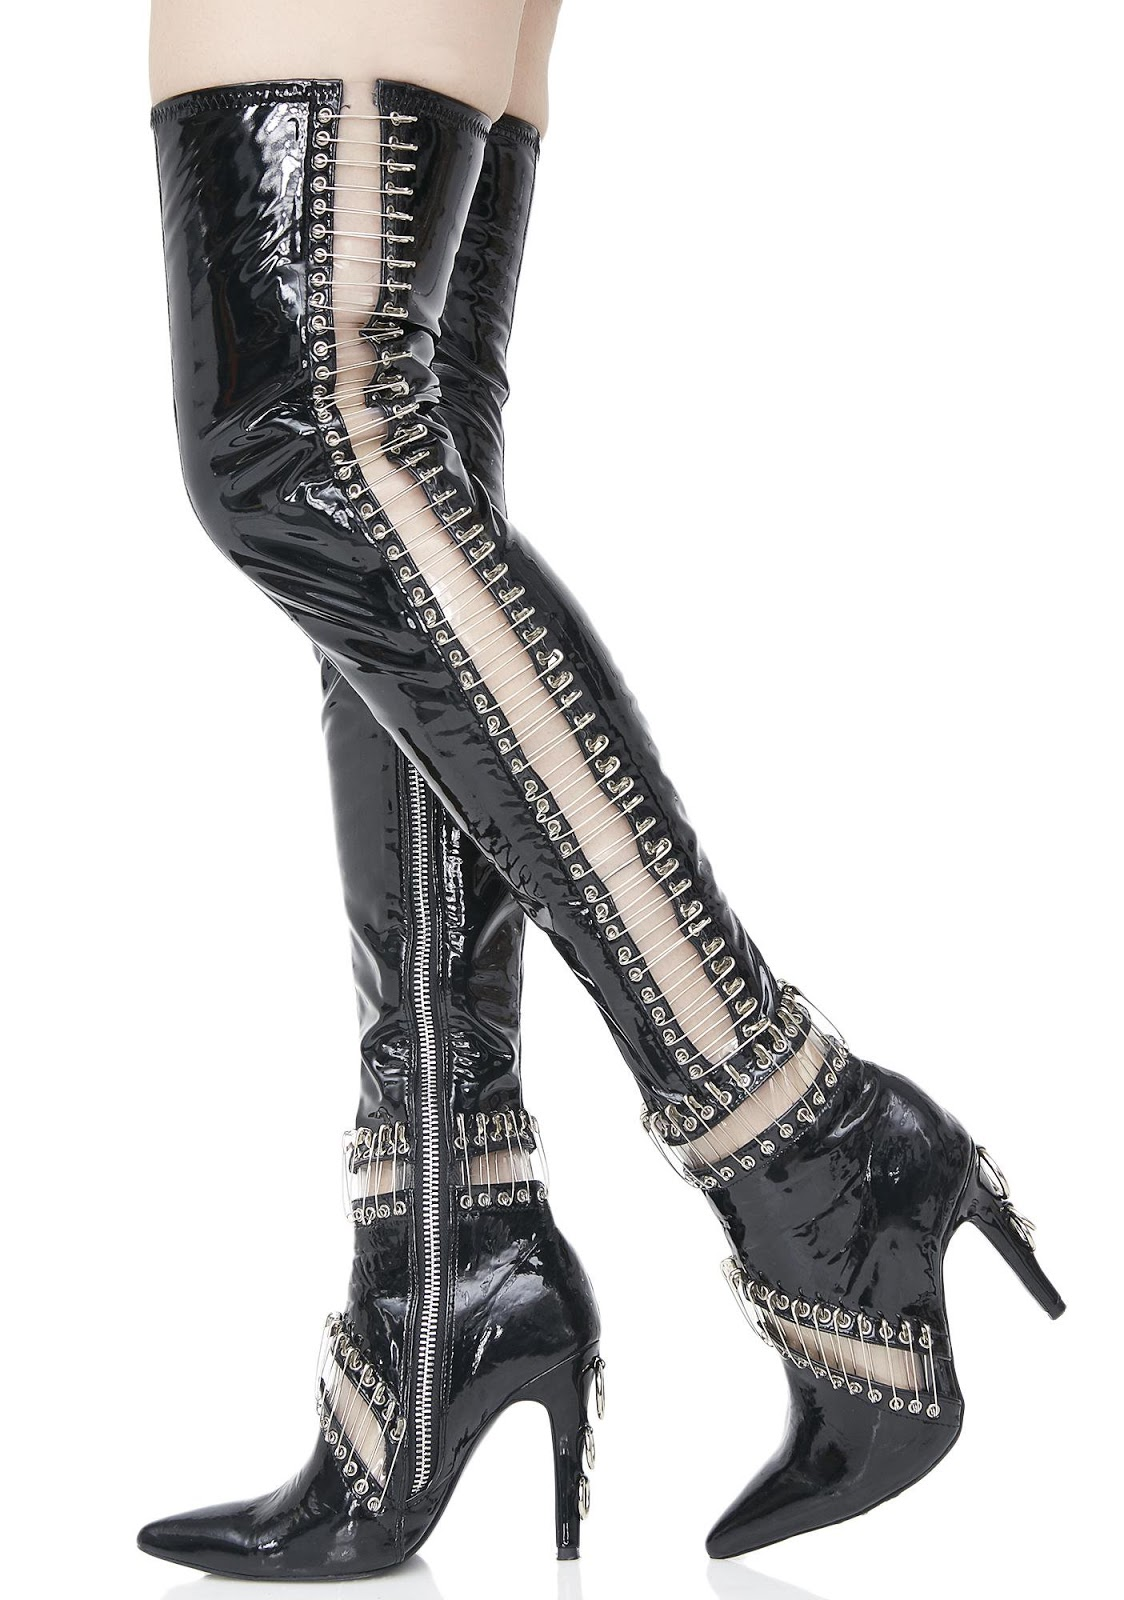 da9a35e334 So Shoe Me ~ 6/16/2017. Today's So Shoe Me is the Pinned Thigh High Boots  by Current Mood.